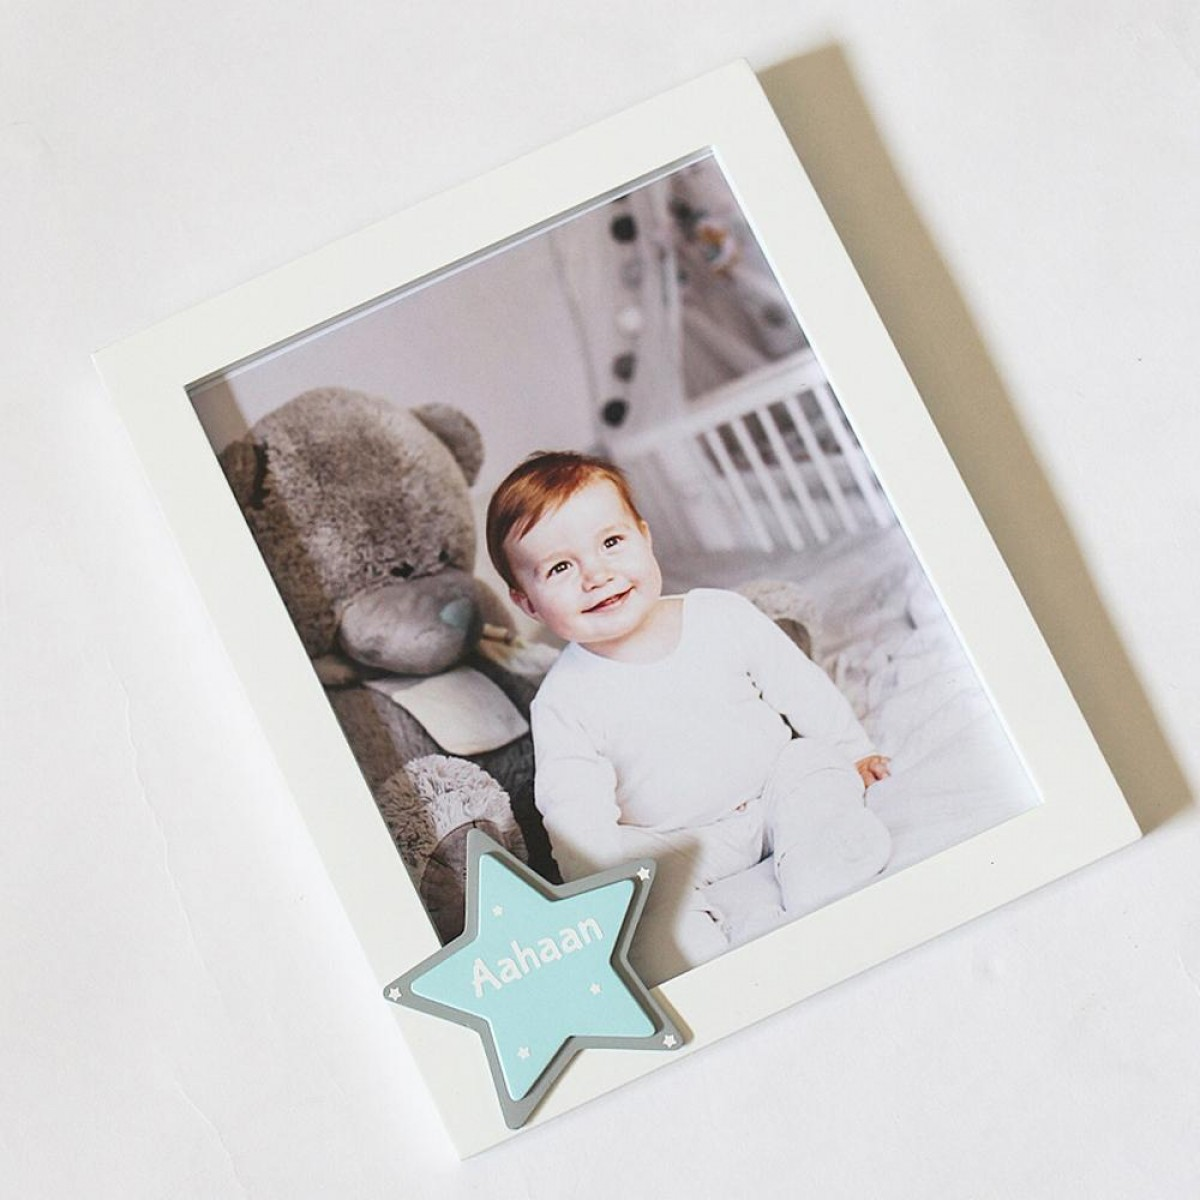 Star Theme Personalized Name Frame - Blue